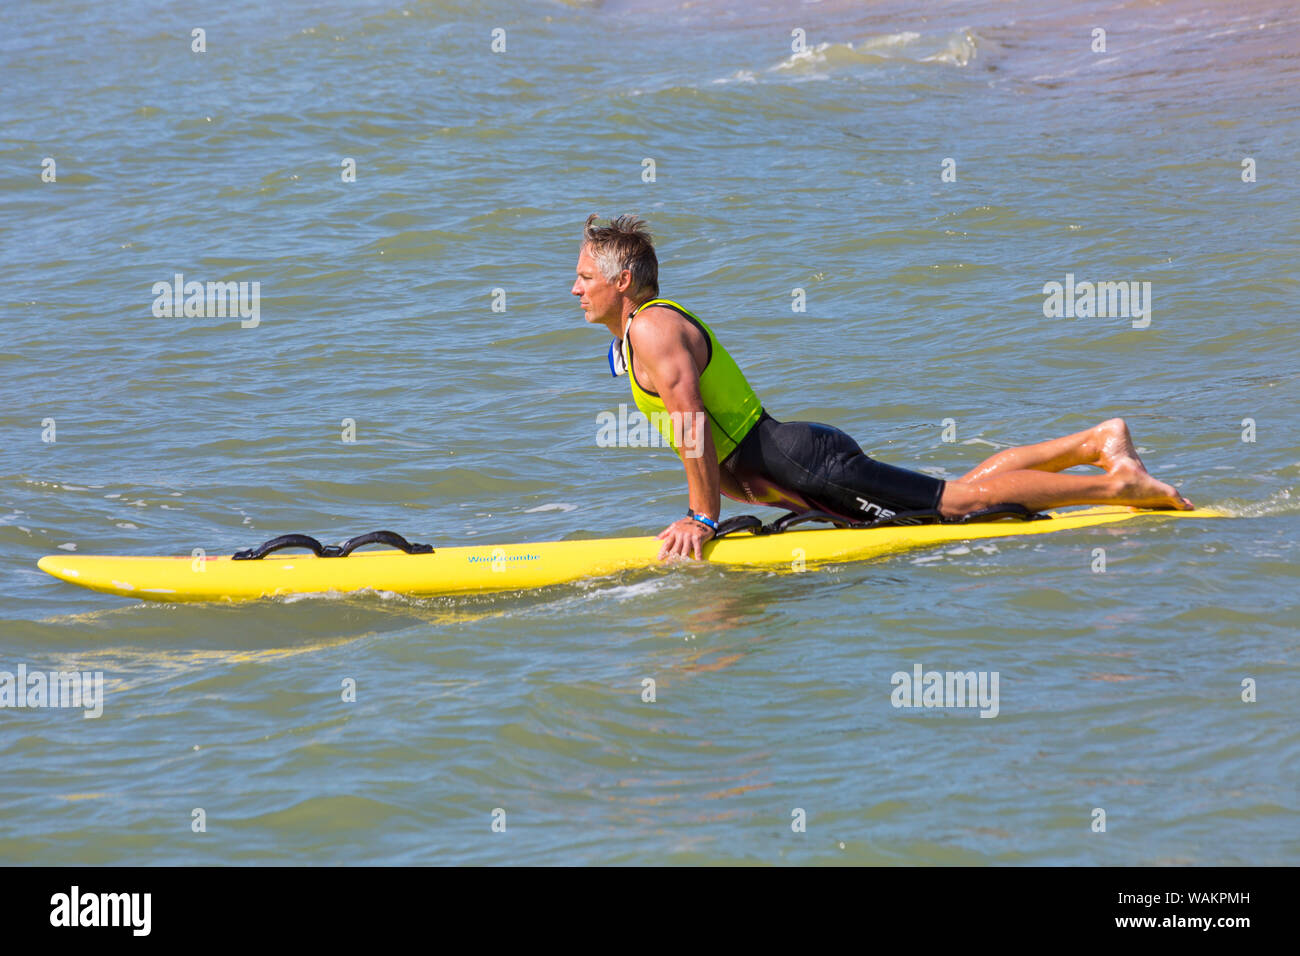 Lifeguard with surf board at Branksome Chine, Poole, Dorset UK on a warm sunny day in August Stock Photo